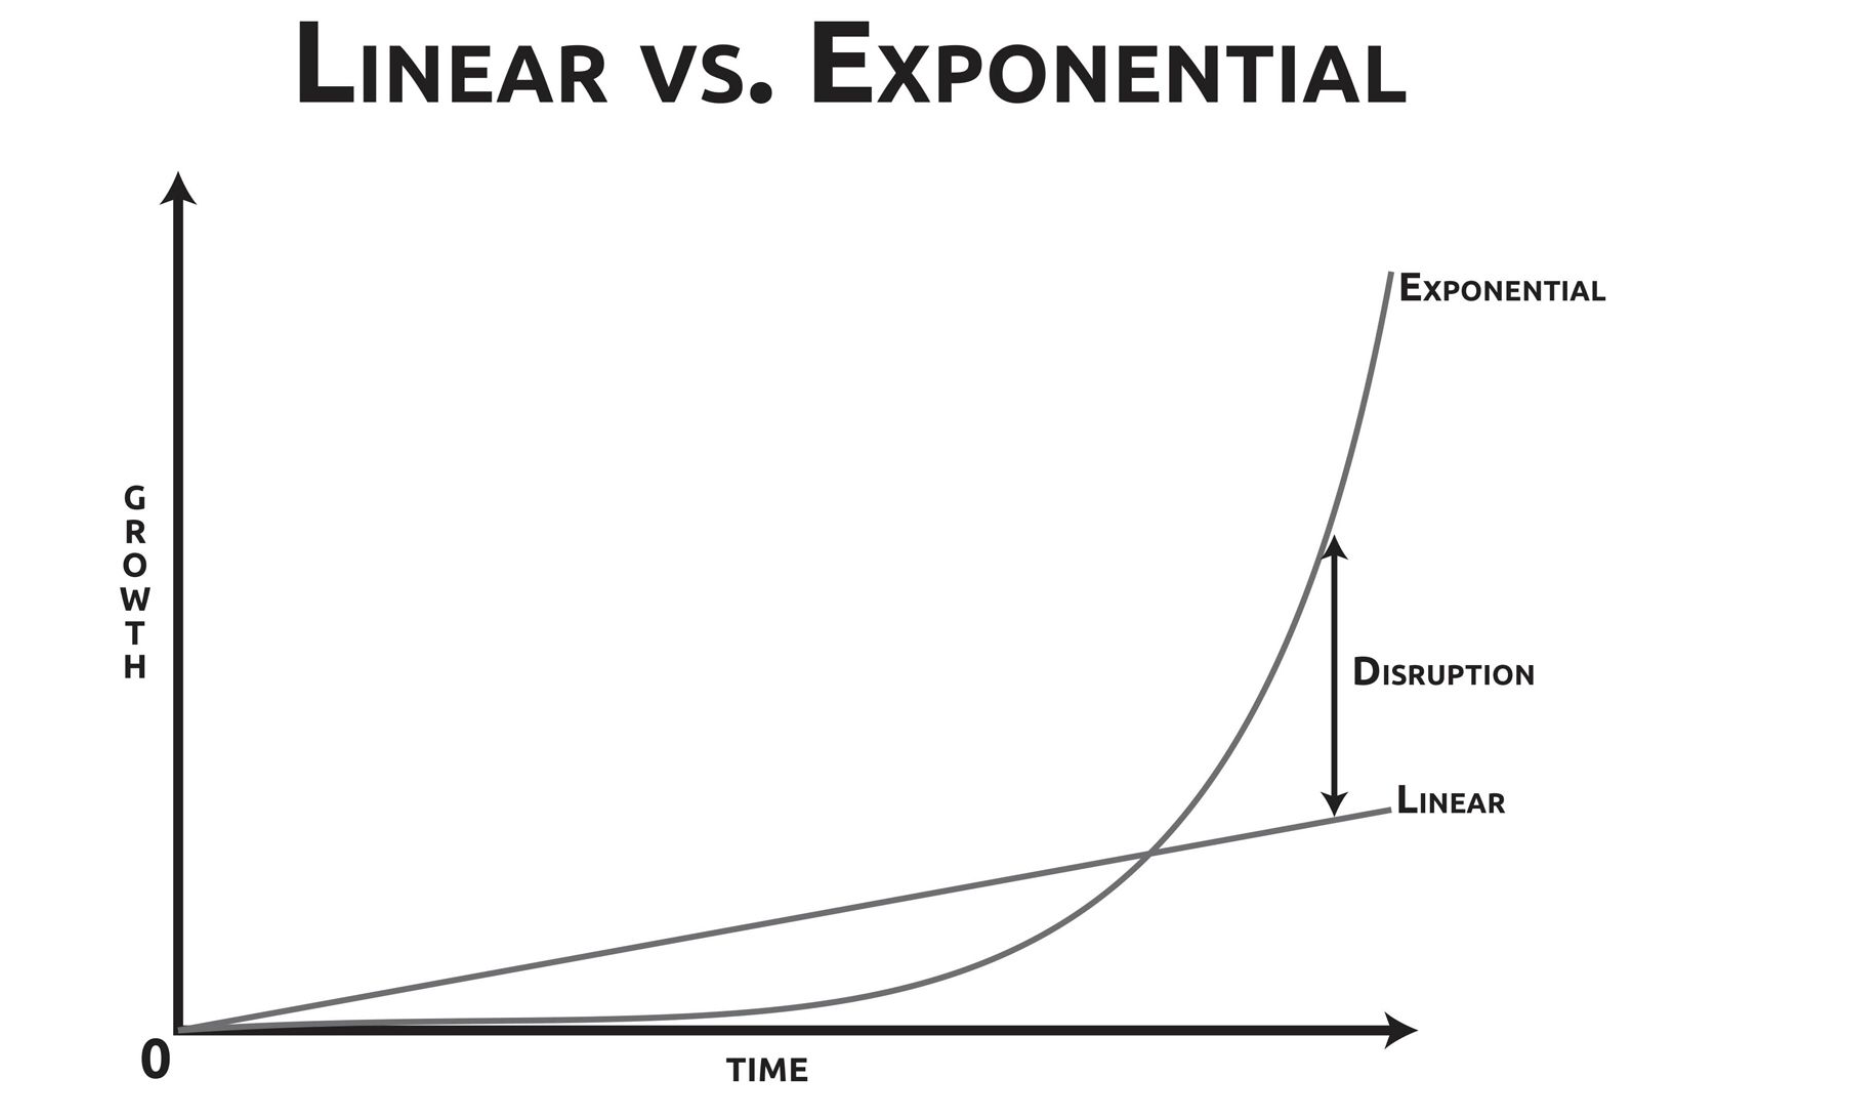 linear-vs-exponential-exponent-org